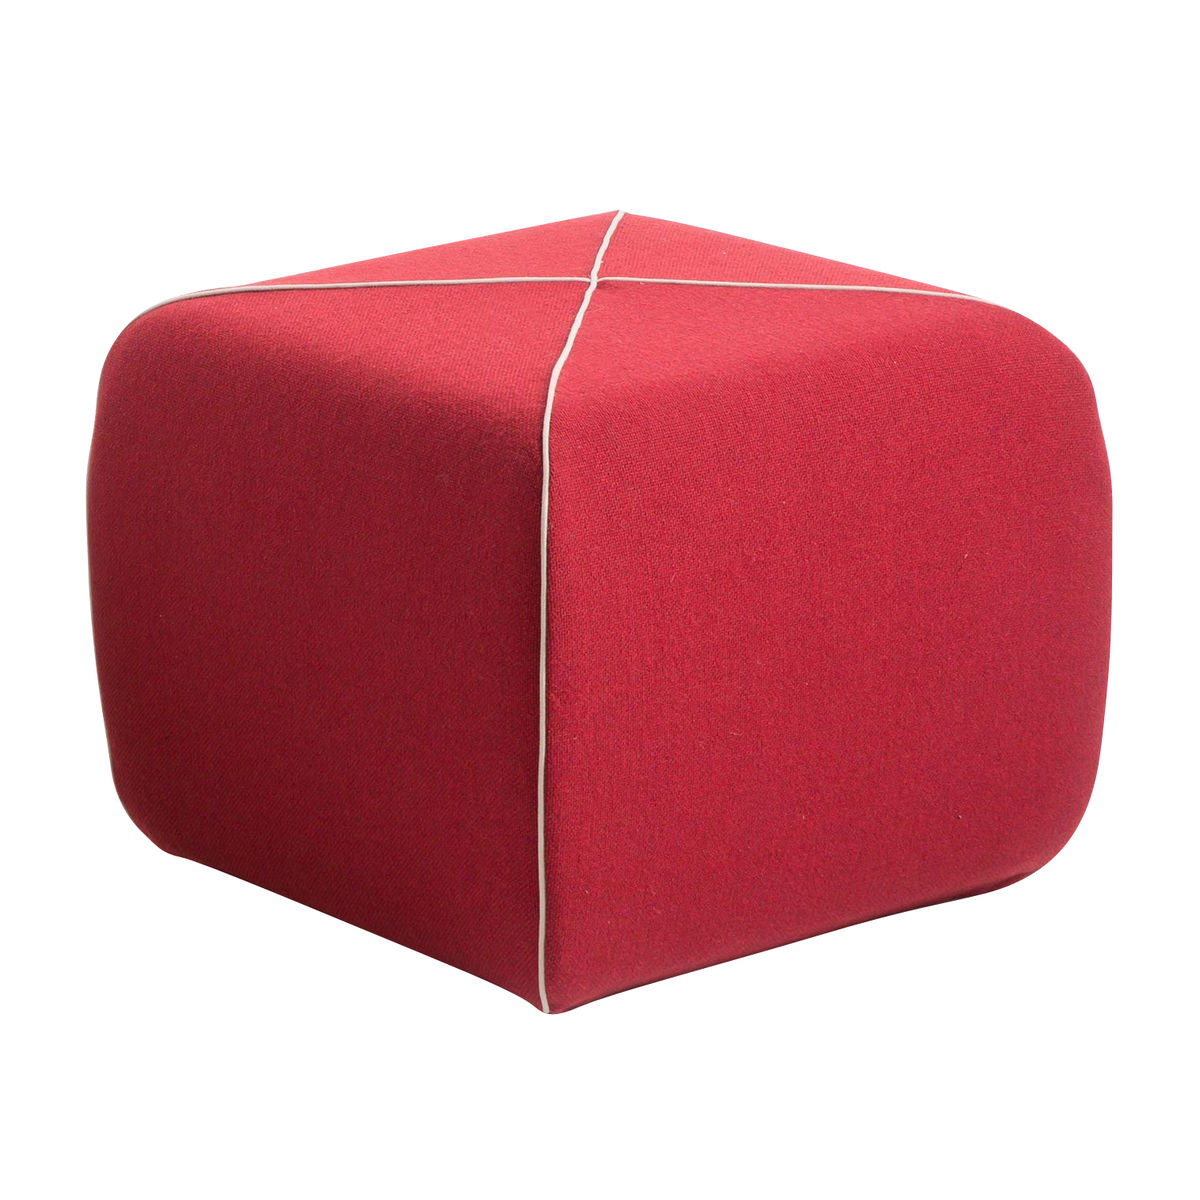 Crossed Pouf With Fabric B Line Stools Seating